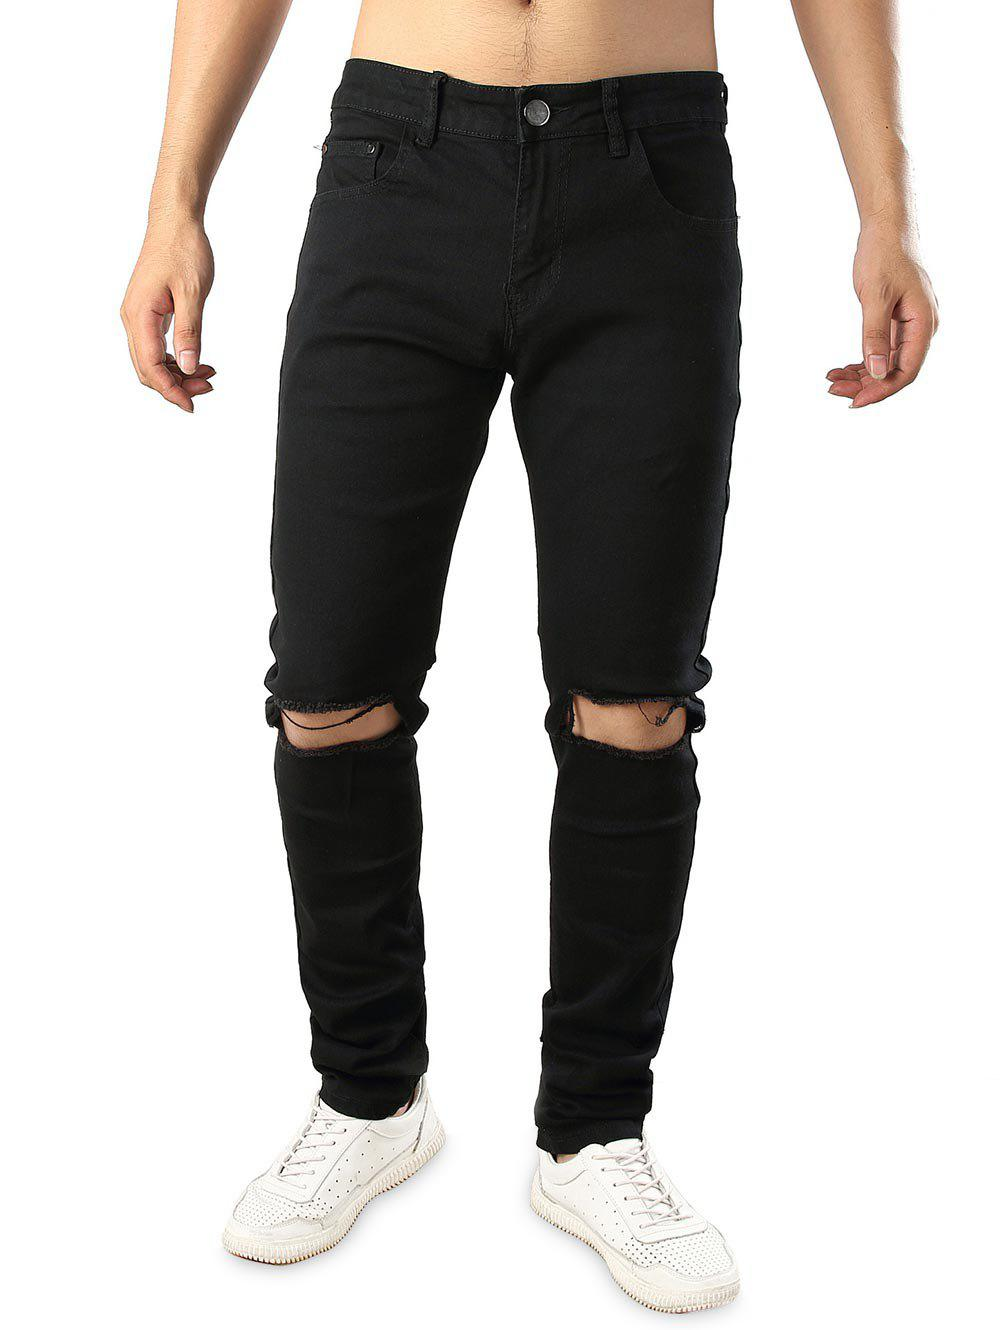 Stretchy Destructed Whickers Casual Ripped Jeans - BLACK 40